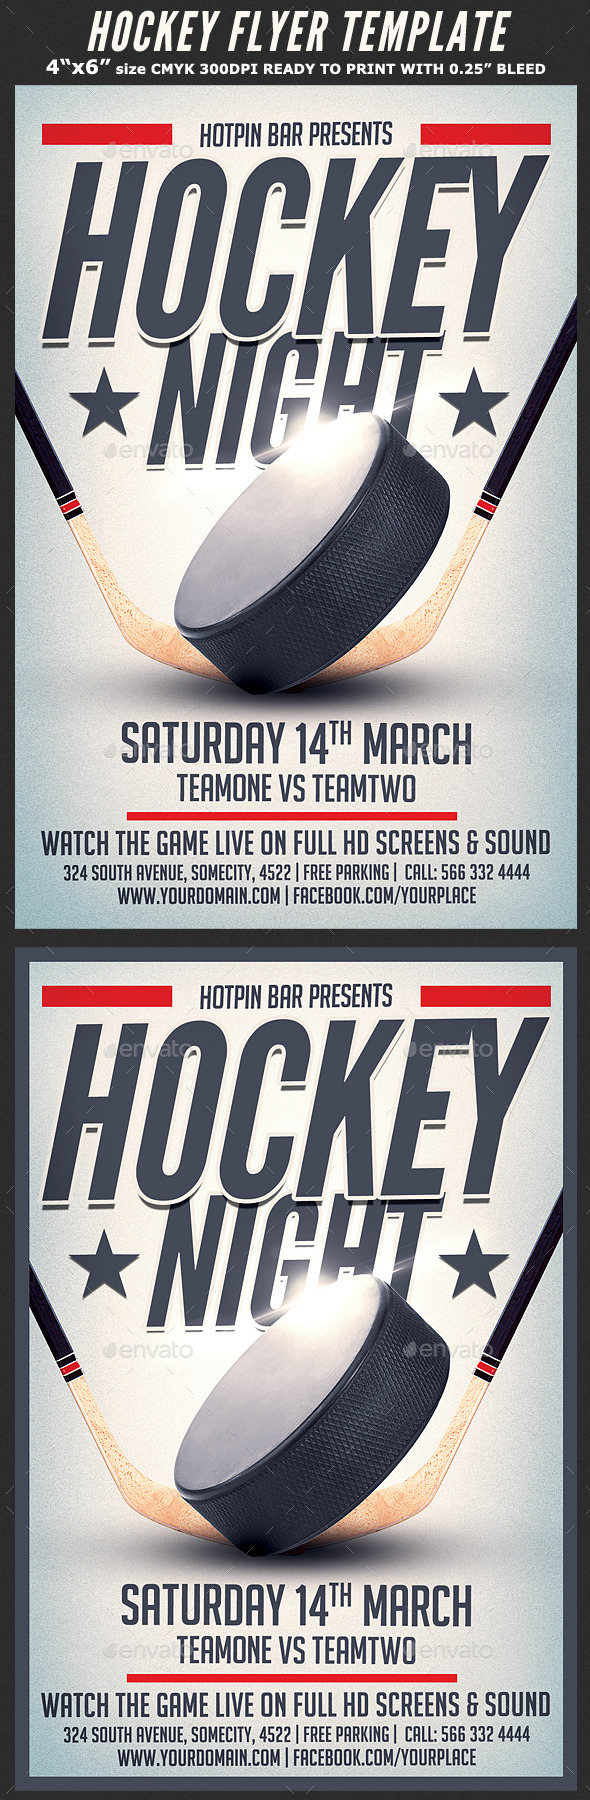 Hockey Match Flyer Template by Hotpin | GraphicRiver